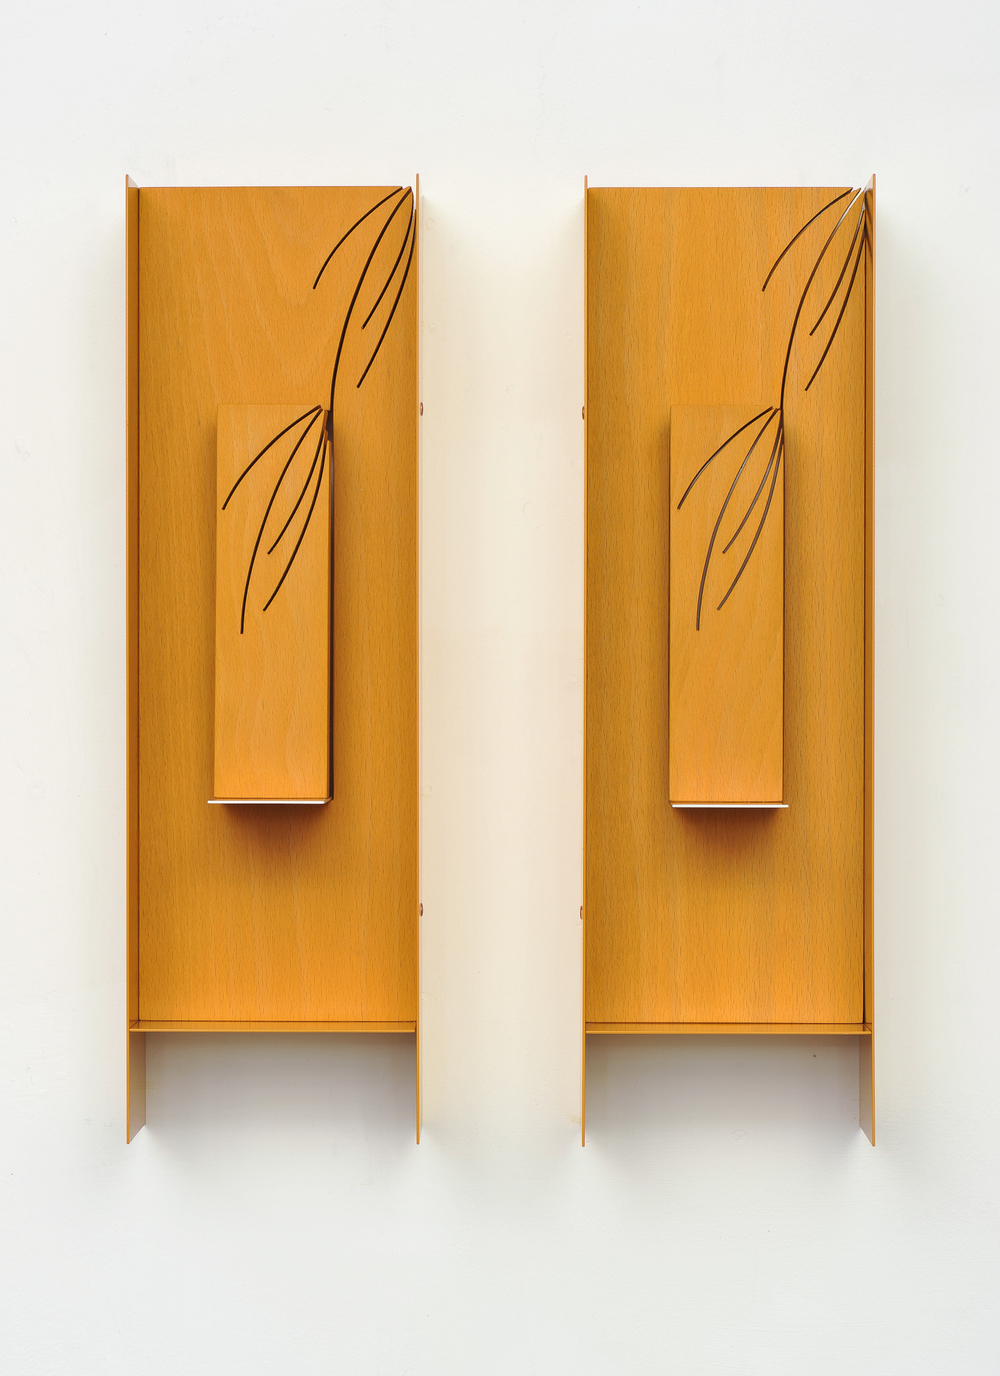 Double Plaque (Handles) 2014 Euro-beech hardwood, steel, copper rivets, enamel, wax 43.1 x 12.7 x 10.1 cm / 17 x 5 x 4 in